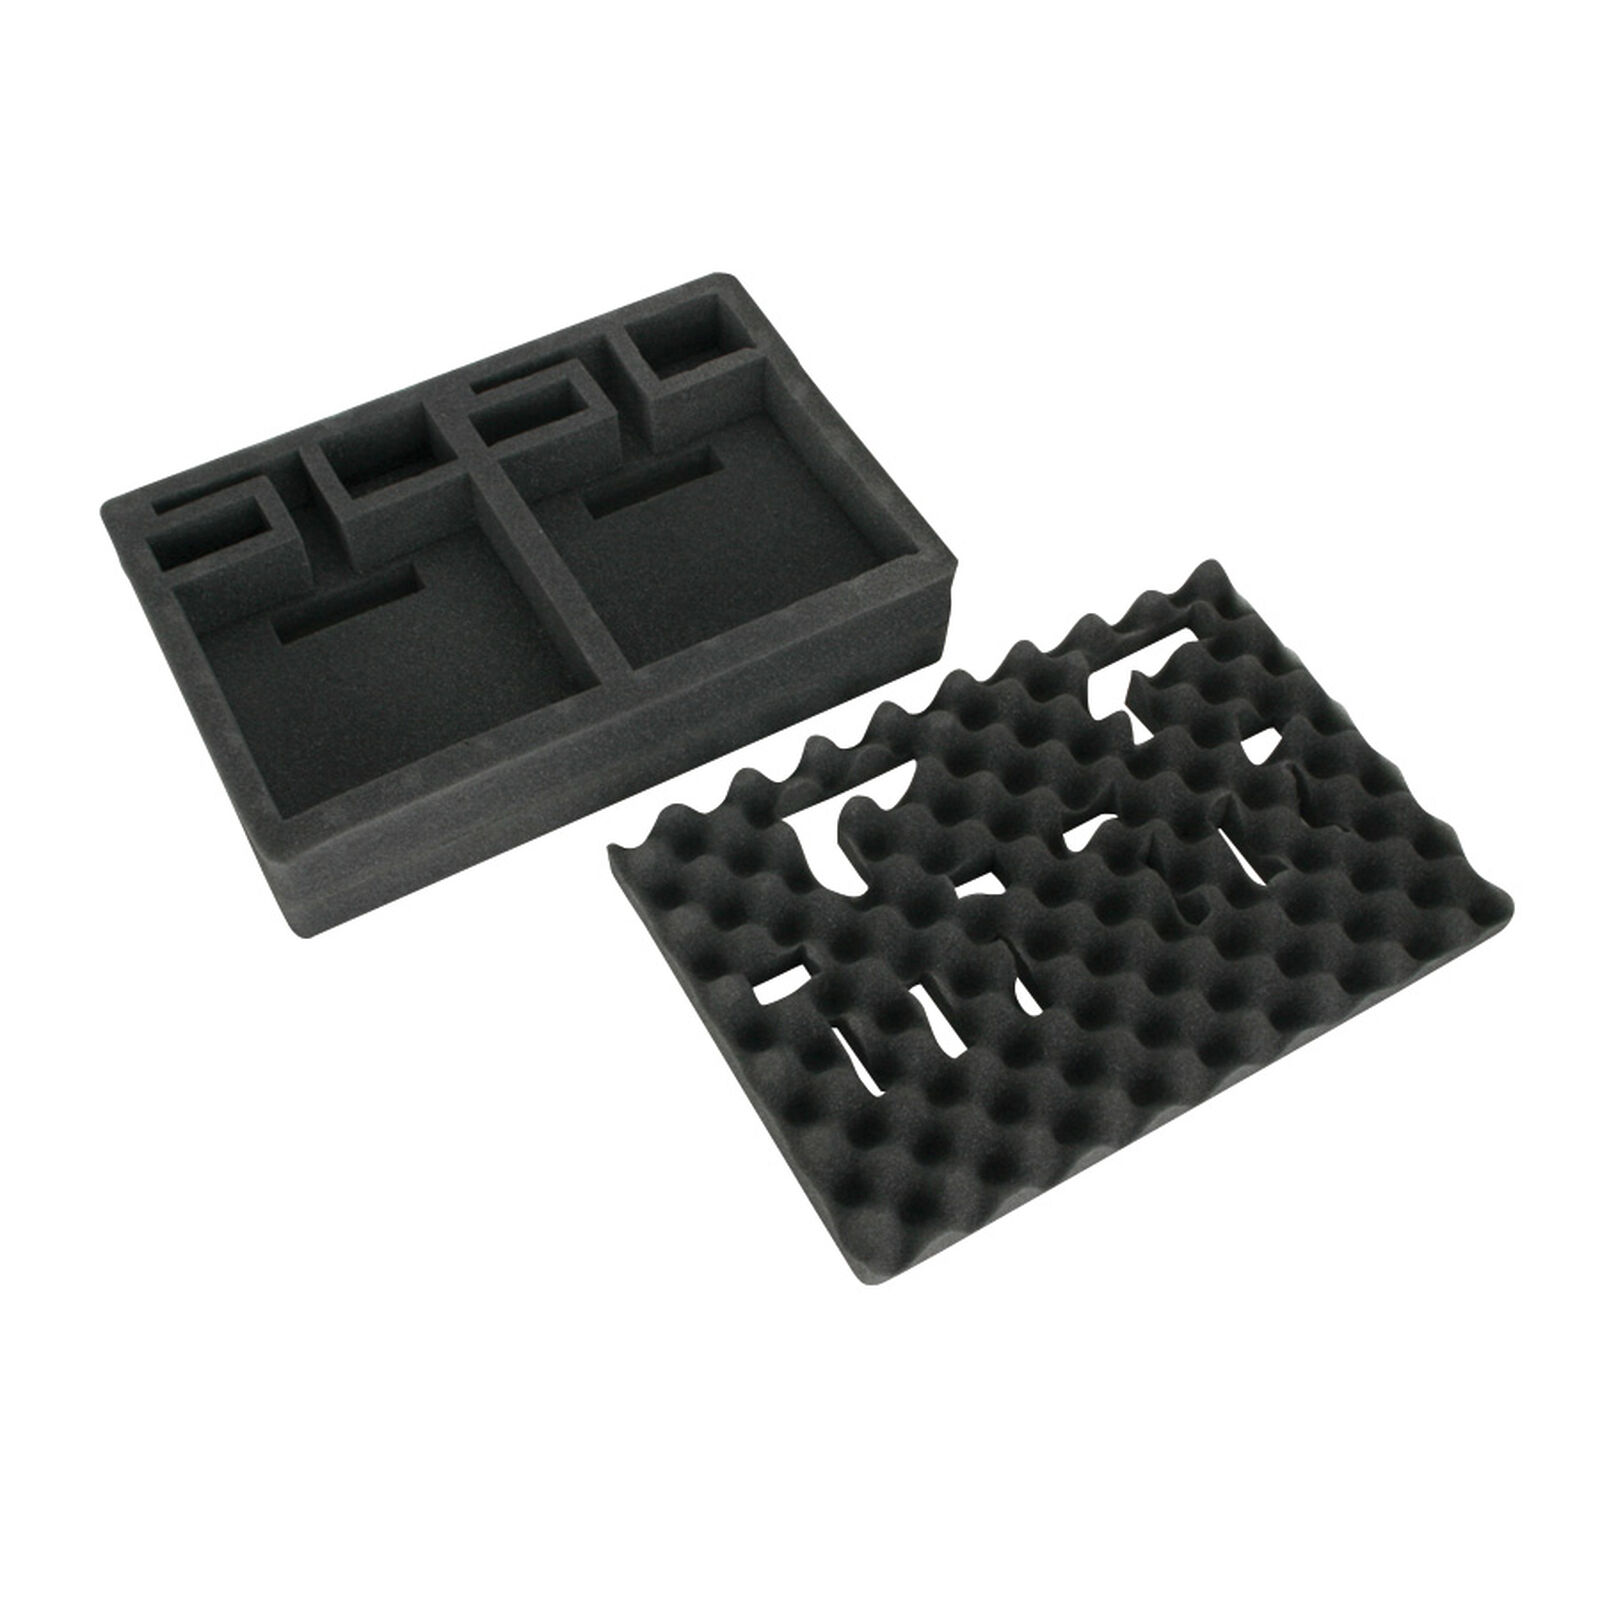 Deluxe Double Aircraft Transmitter Case Foam